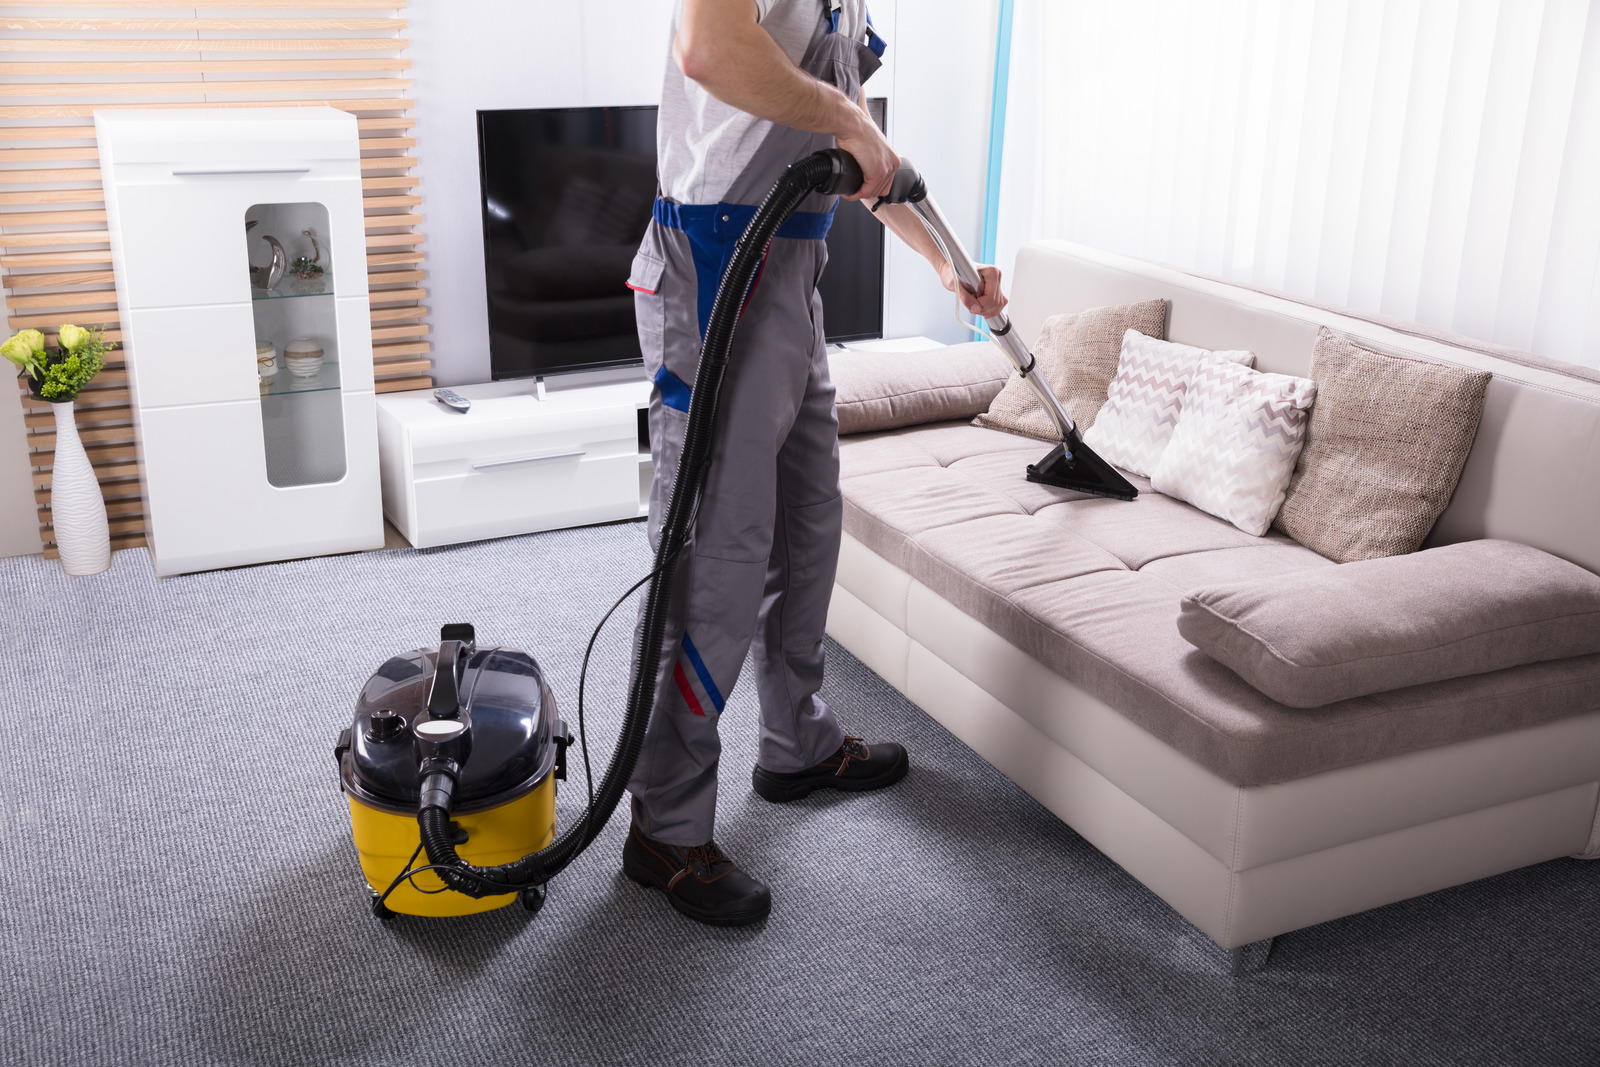 How to professionally clean a pet owners house?